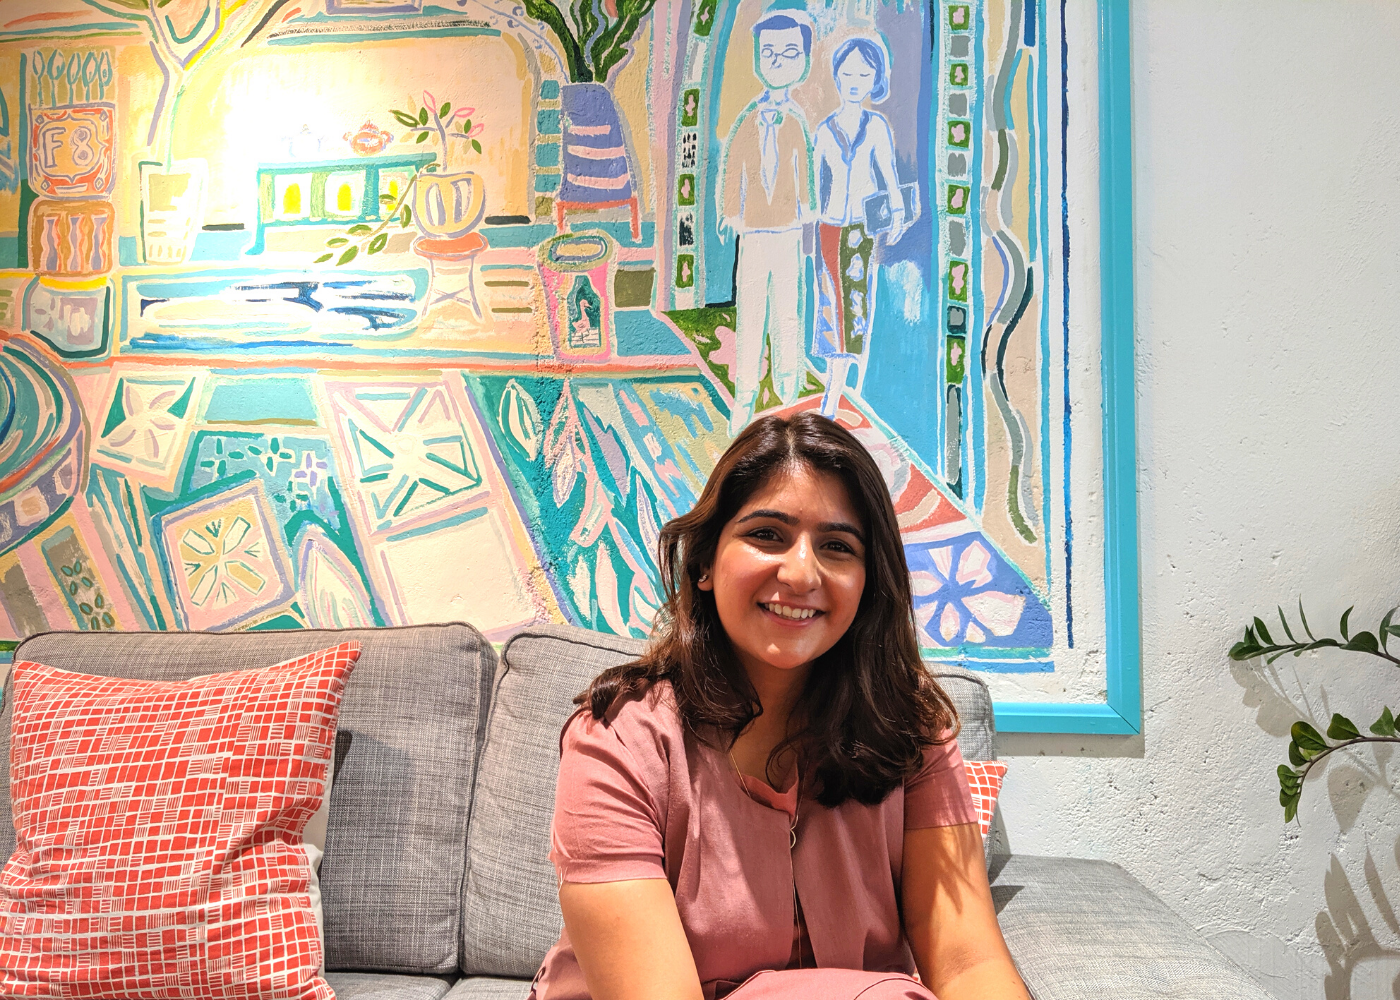 Meet Mahima Gujral Wadhwa of Sui, a sustainable clothing label with a special edit that's affordable!